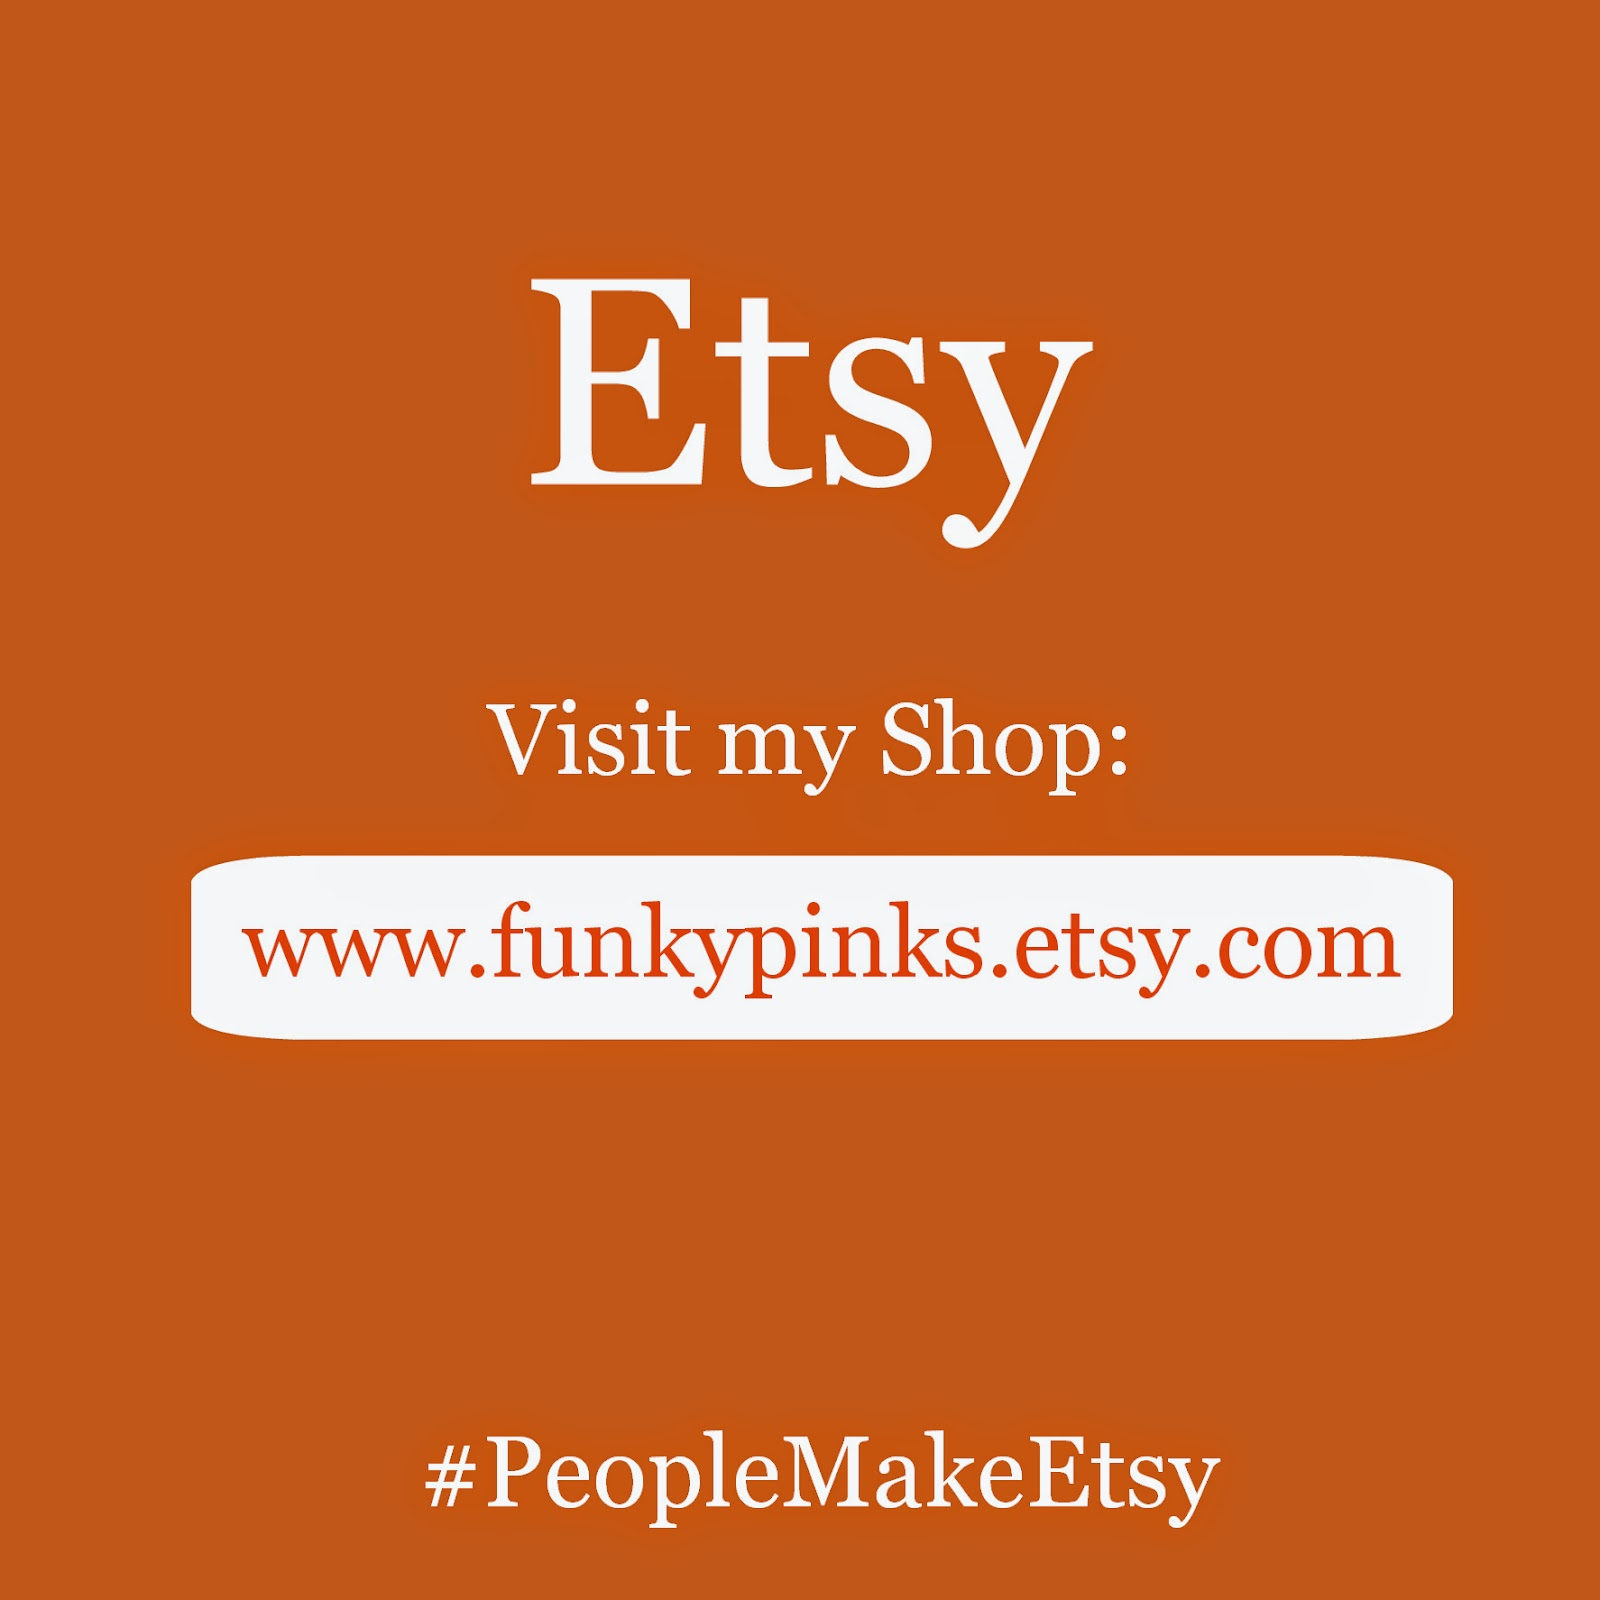 Go to the FunkyPinks Store